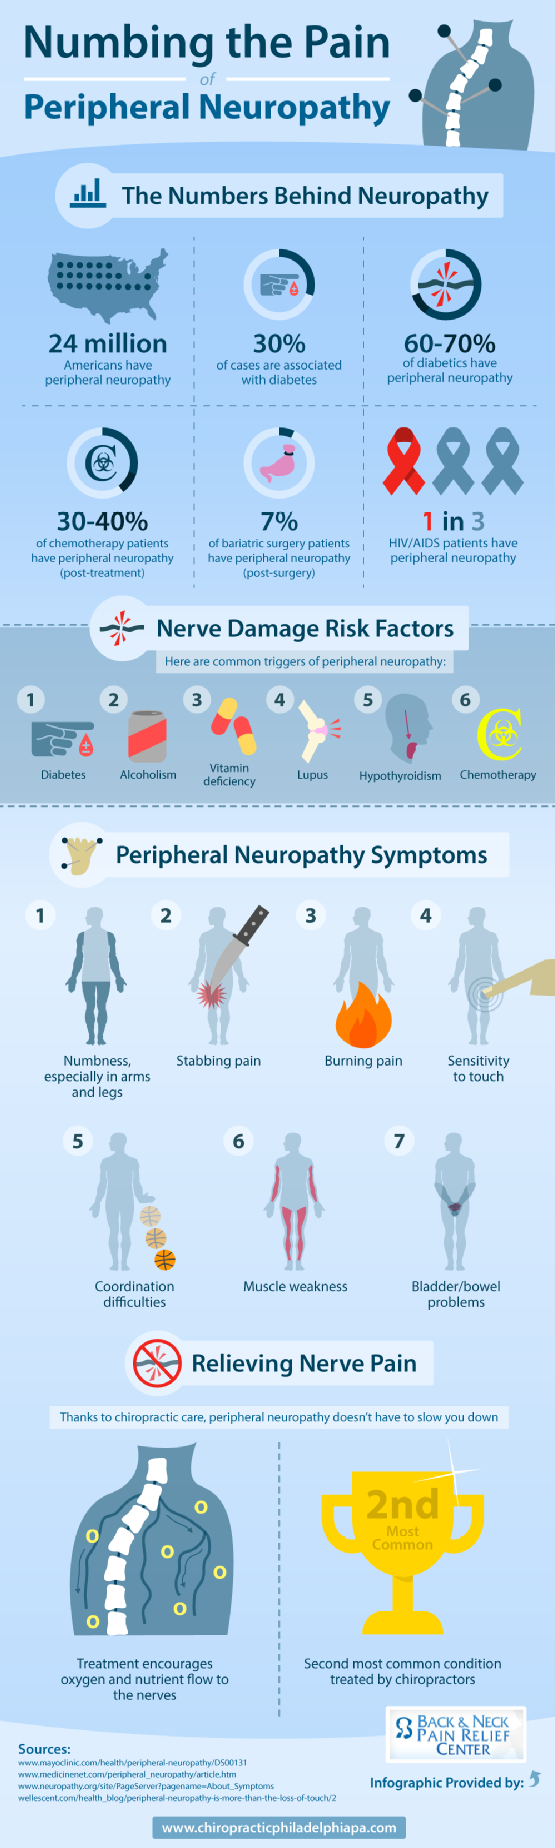 9. Numbing the pain of peripheral neuropathy